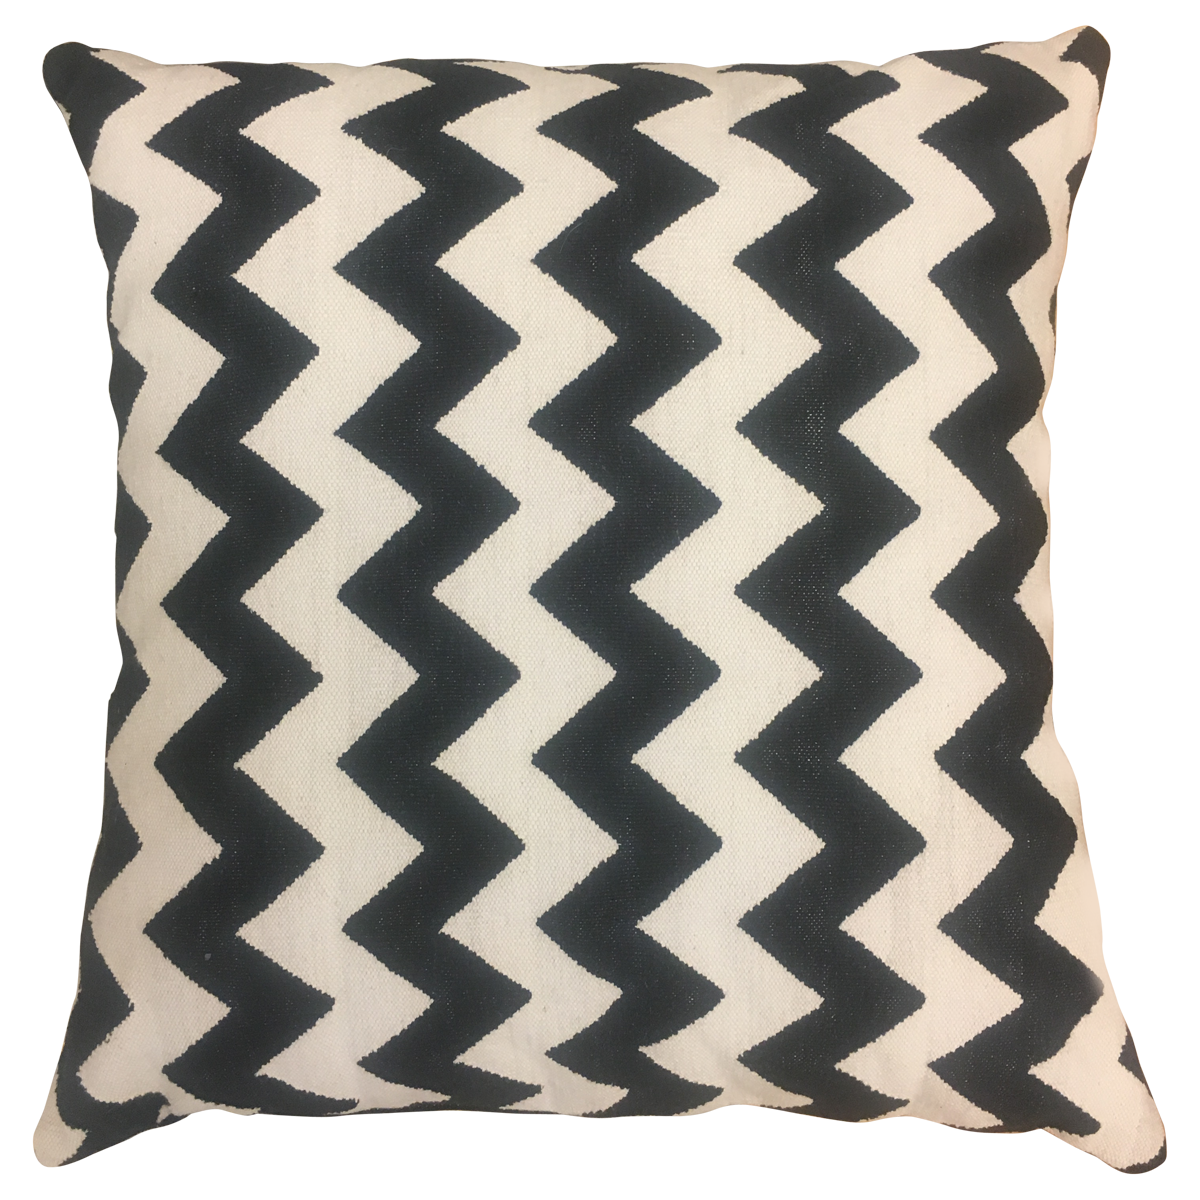 Exciting Madeline Weinrib Styles | Brilliant Madeline Weinrib Pillows for Sale Inspiration